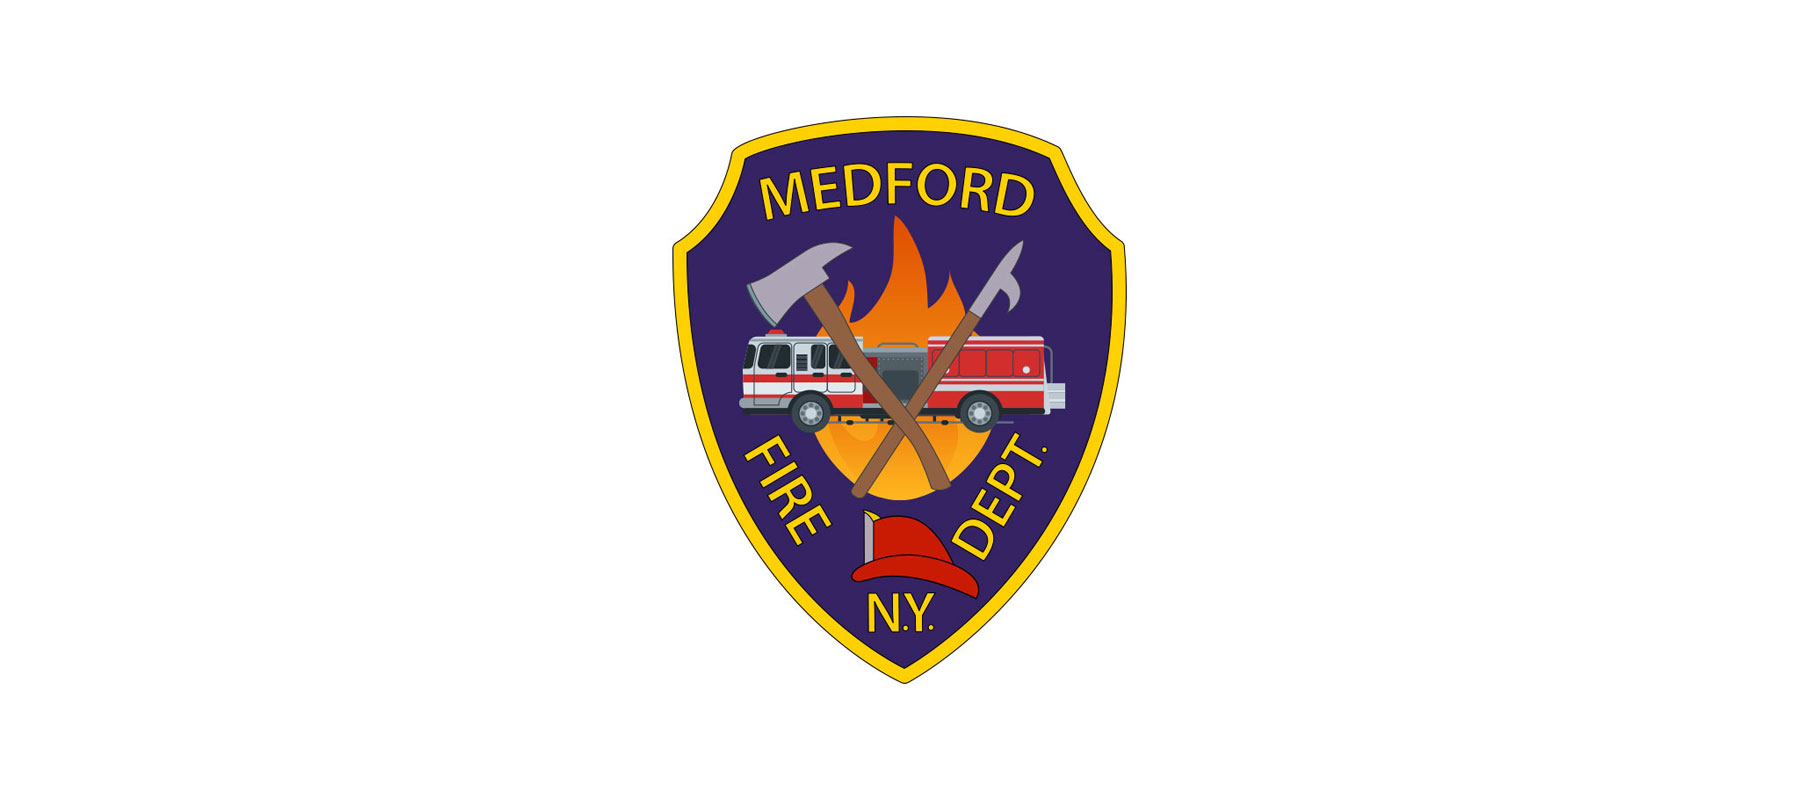 Tri-State LED Completes LED Retrofit for Medford Fire Department